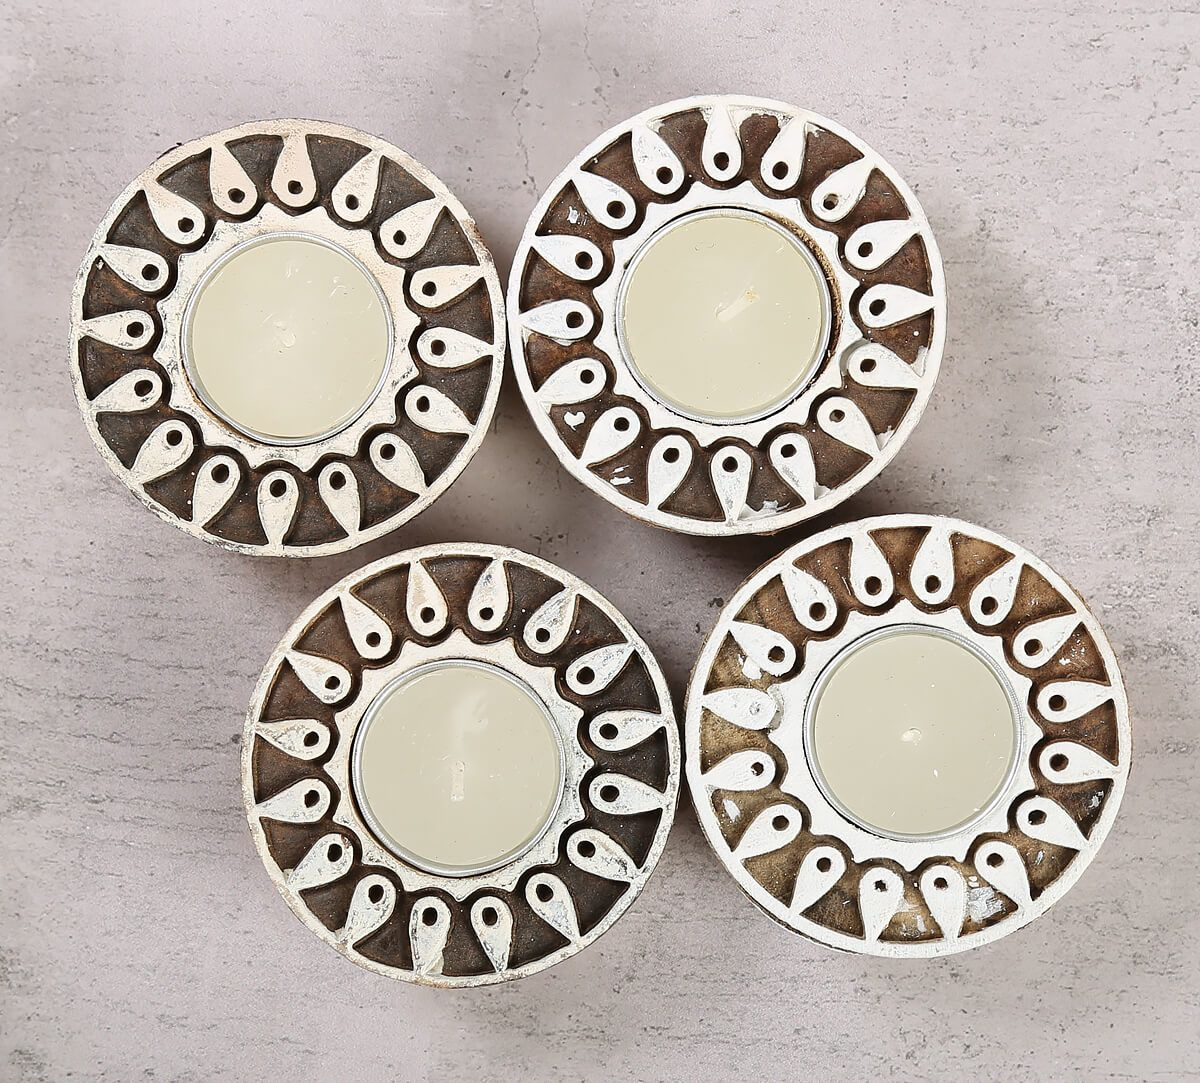 India Circus Round Shaped Wooden Engraved Tea Light Holder Set of 4